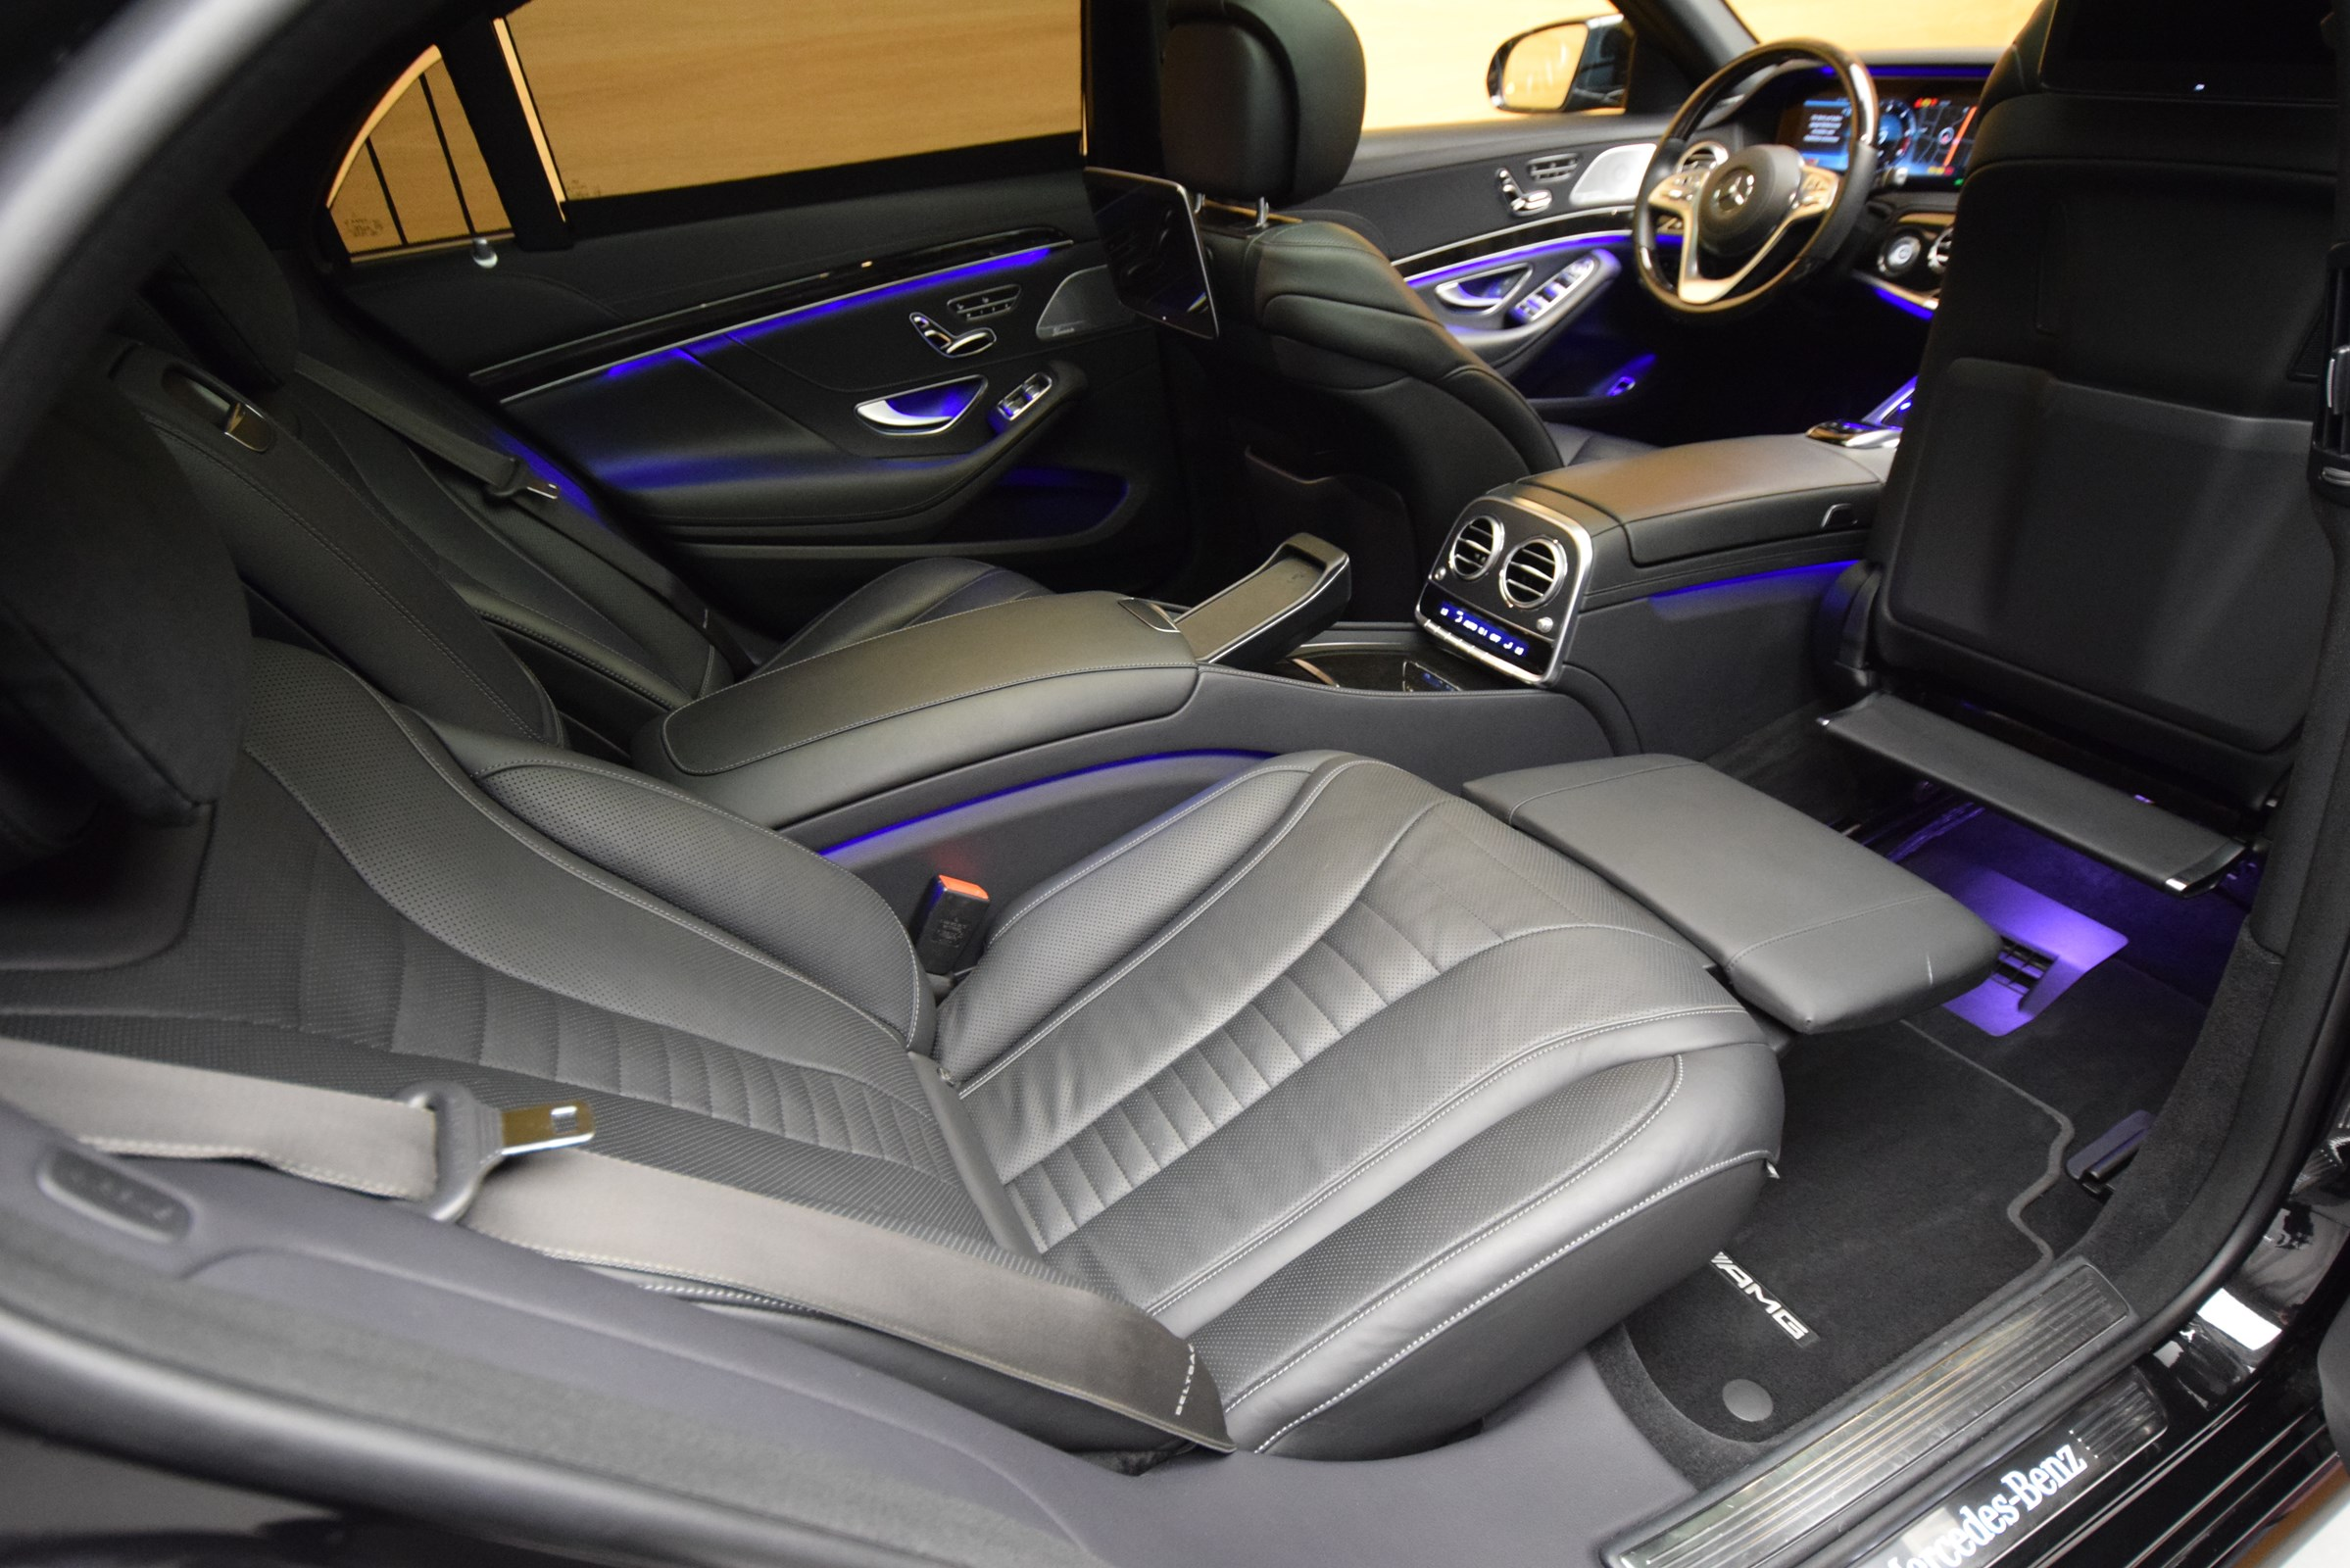 our clean limousine from inside ready for limousine services in davos for the world economic forum